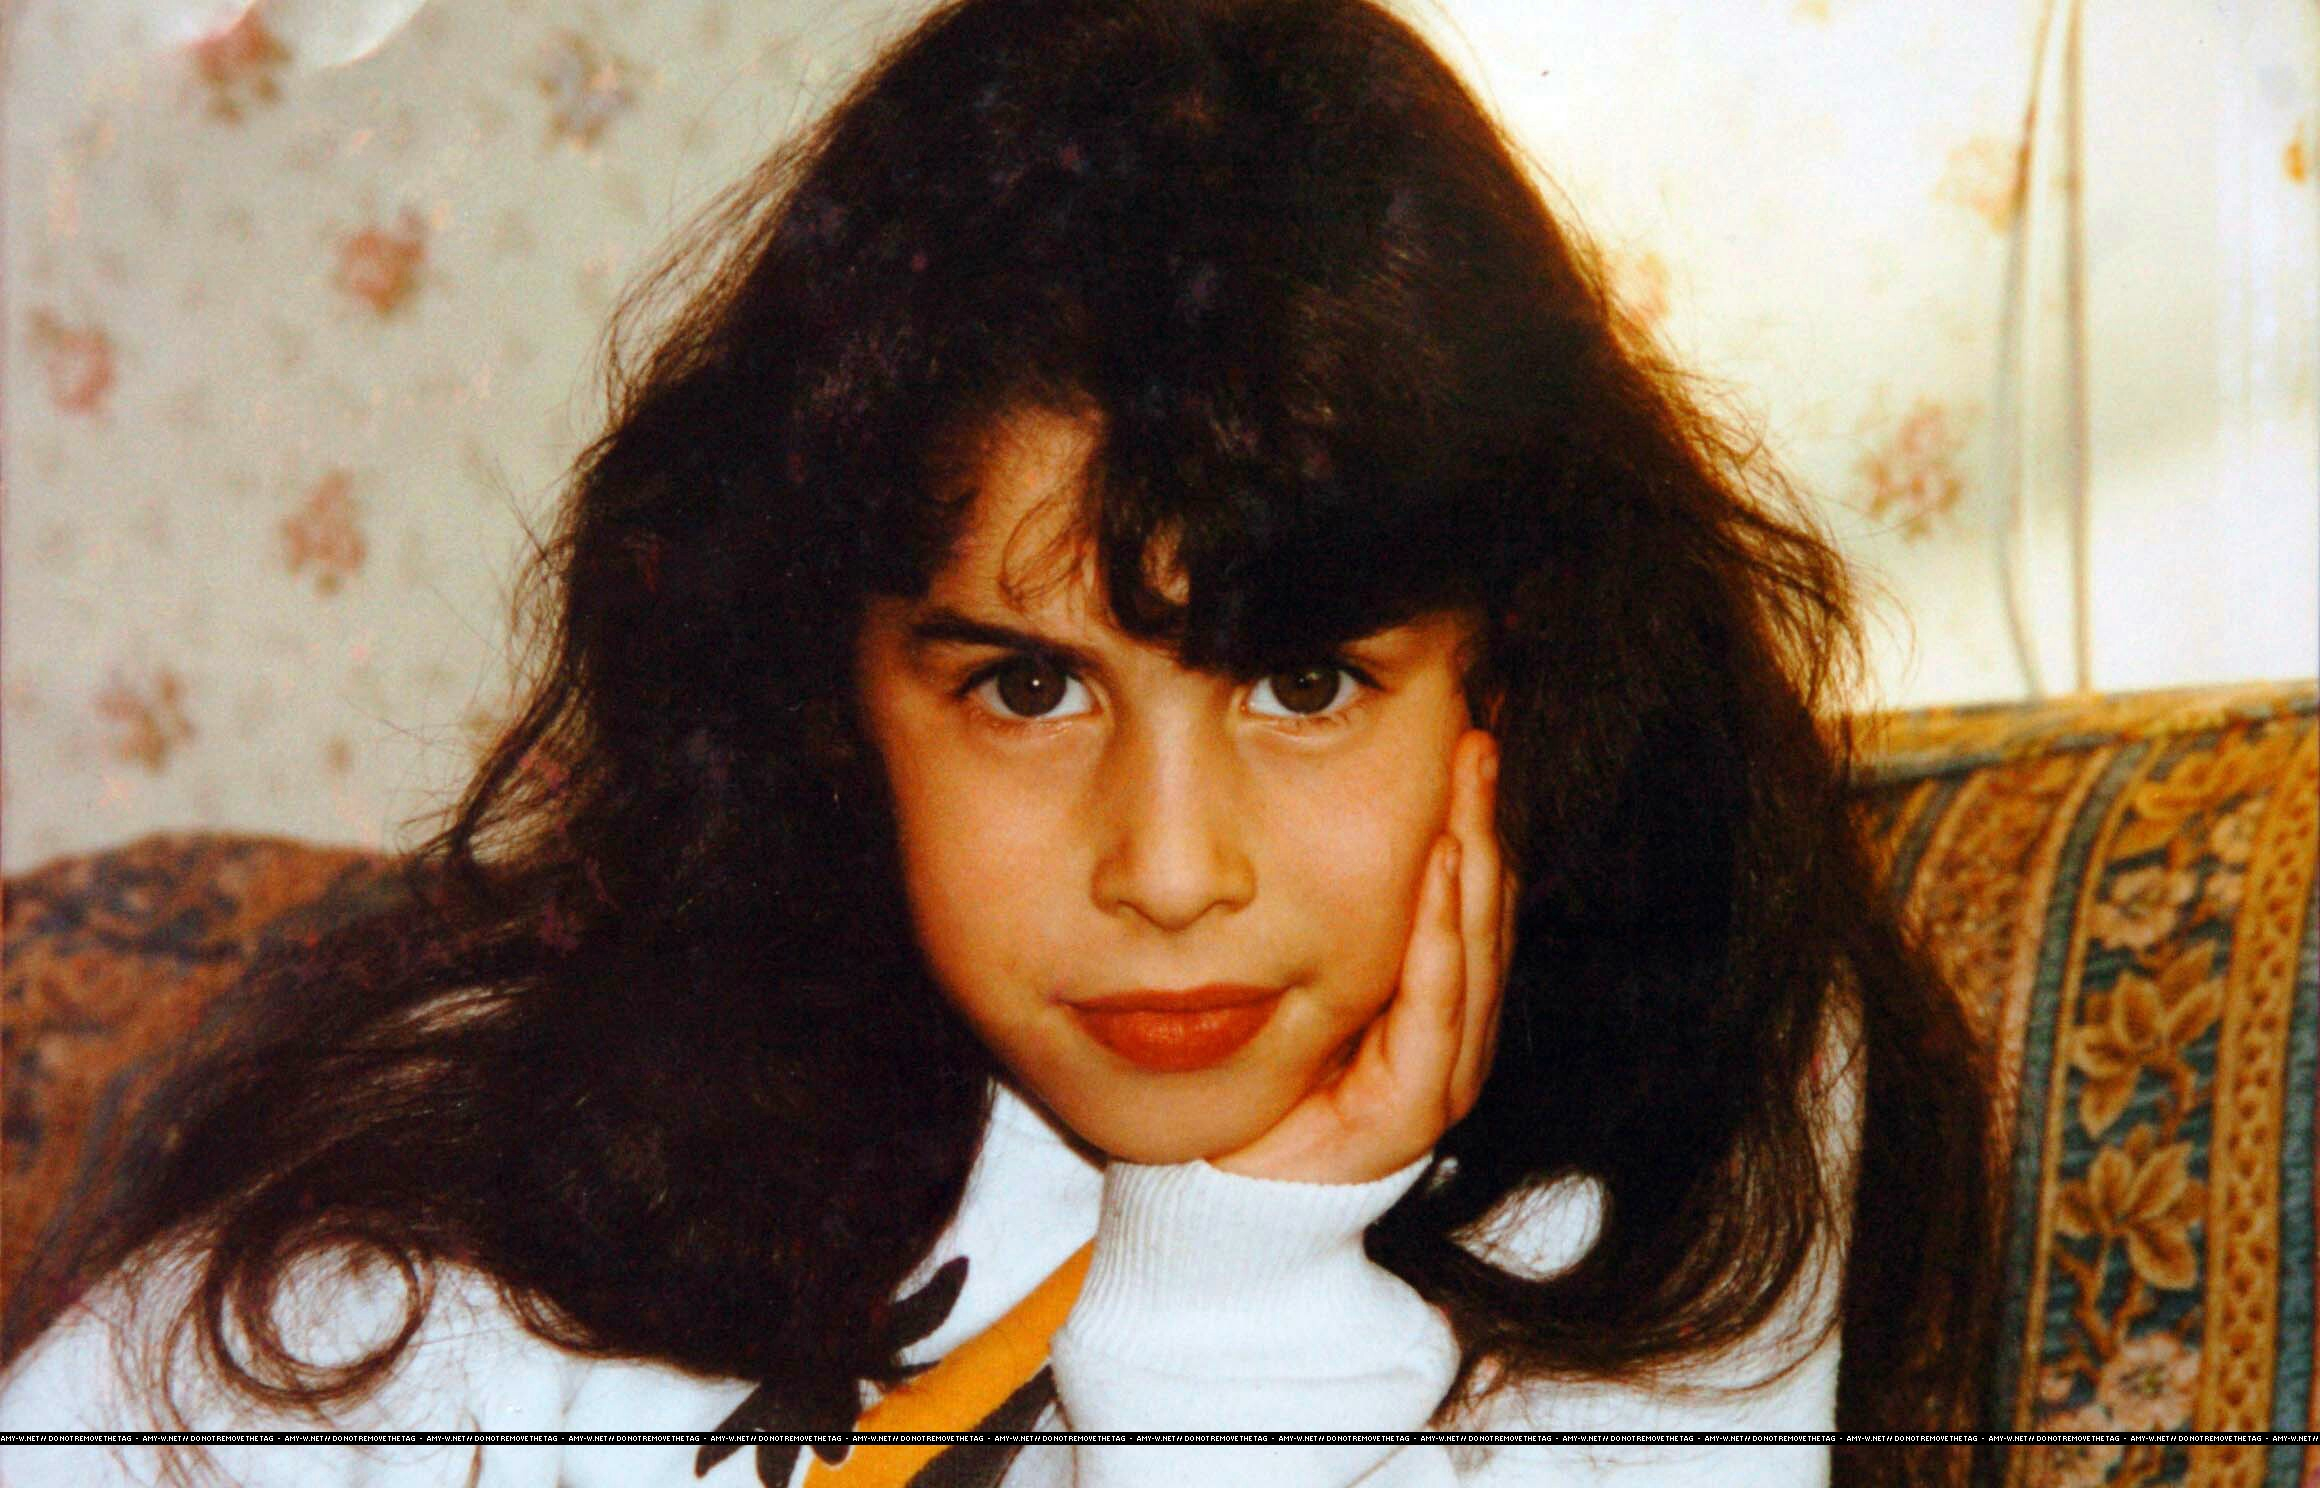 Amy Winehouse, the award-winning singer, seen in these candid shots from her childhood. Amy is reportedly attending rehab at the world-famous Meadows Clinic in Arizona for drinks and drug addiction. Pictured: Amy Winehouse aged 10 Ref: NSTUK 150807 A EXCLUSIVE Splash News and Picture Agency does not claim any Copyright or License in the attached material. Any downloading fees charged by Splash are for Splash's services only, and do not, nor are they intended to, convey to the user any Copyright or License in the material. By publishing this material , the user expressly agrees to indemnify and to hold Splash harmless from any claims, demands, or causes of action arising out of or connected in any way with user's publication of the material. Splash News and Pictures Los Angeles: 310-821-2666 New York: 212-619-2666 London: 207-107-2666 photodesk@splashnews.com www.splashnews.com